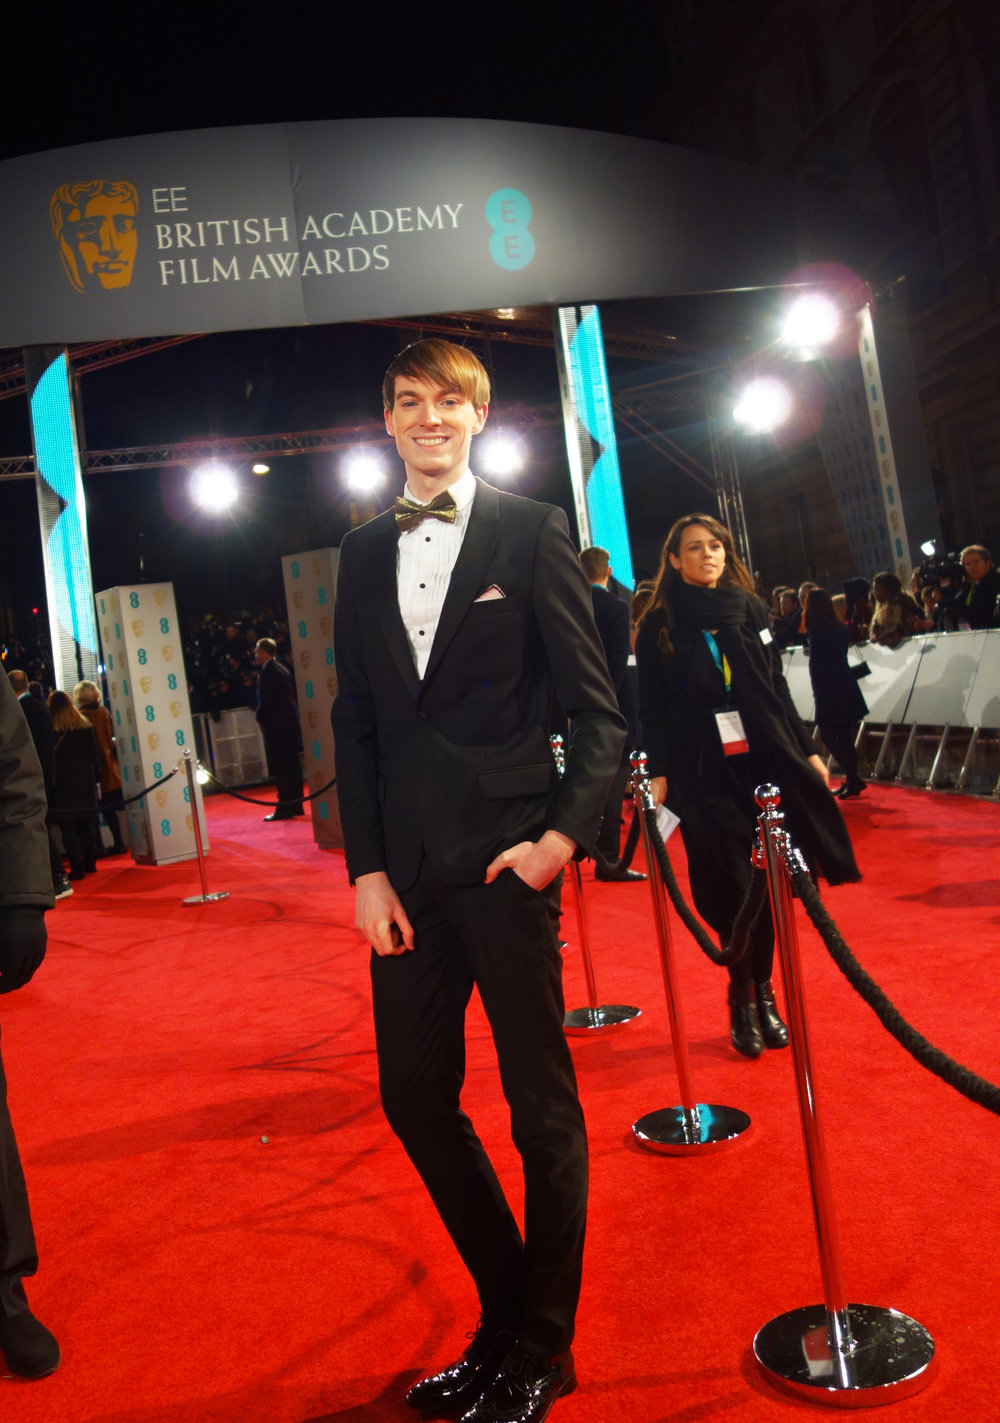 Richard Brownlie-Marshall at the BAFTAs